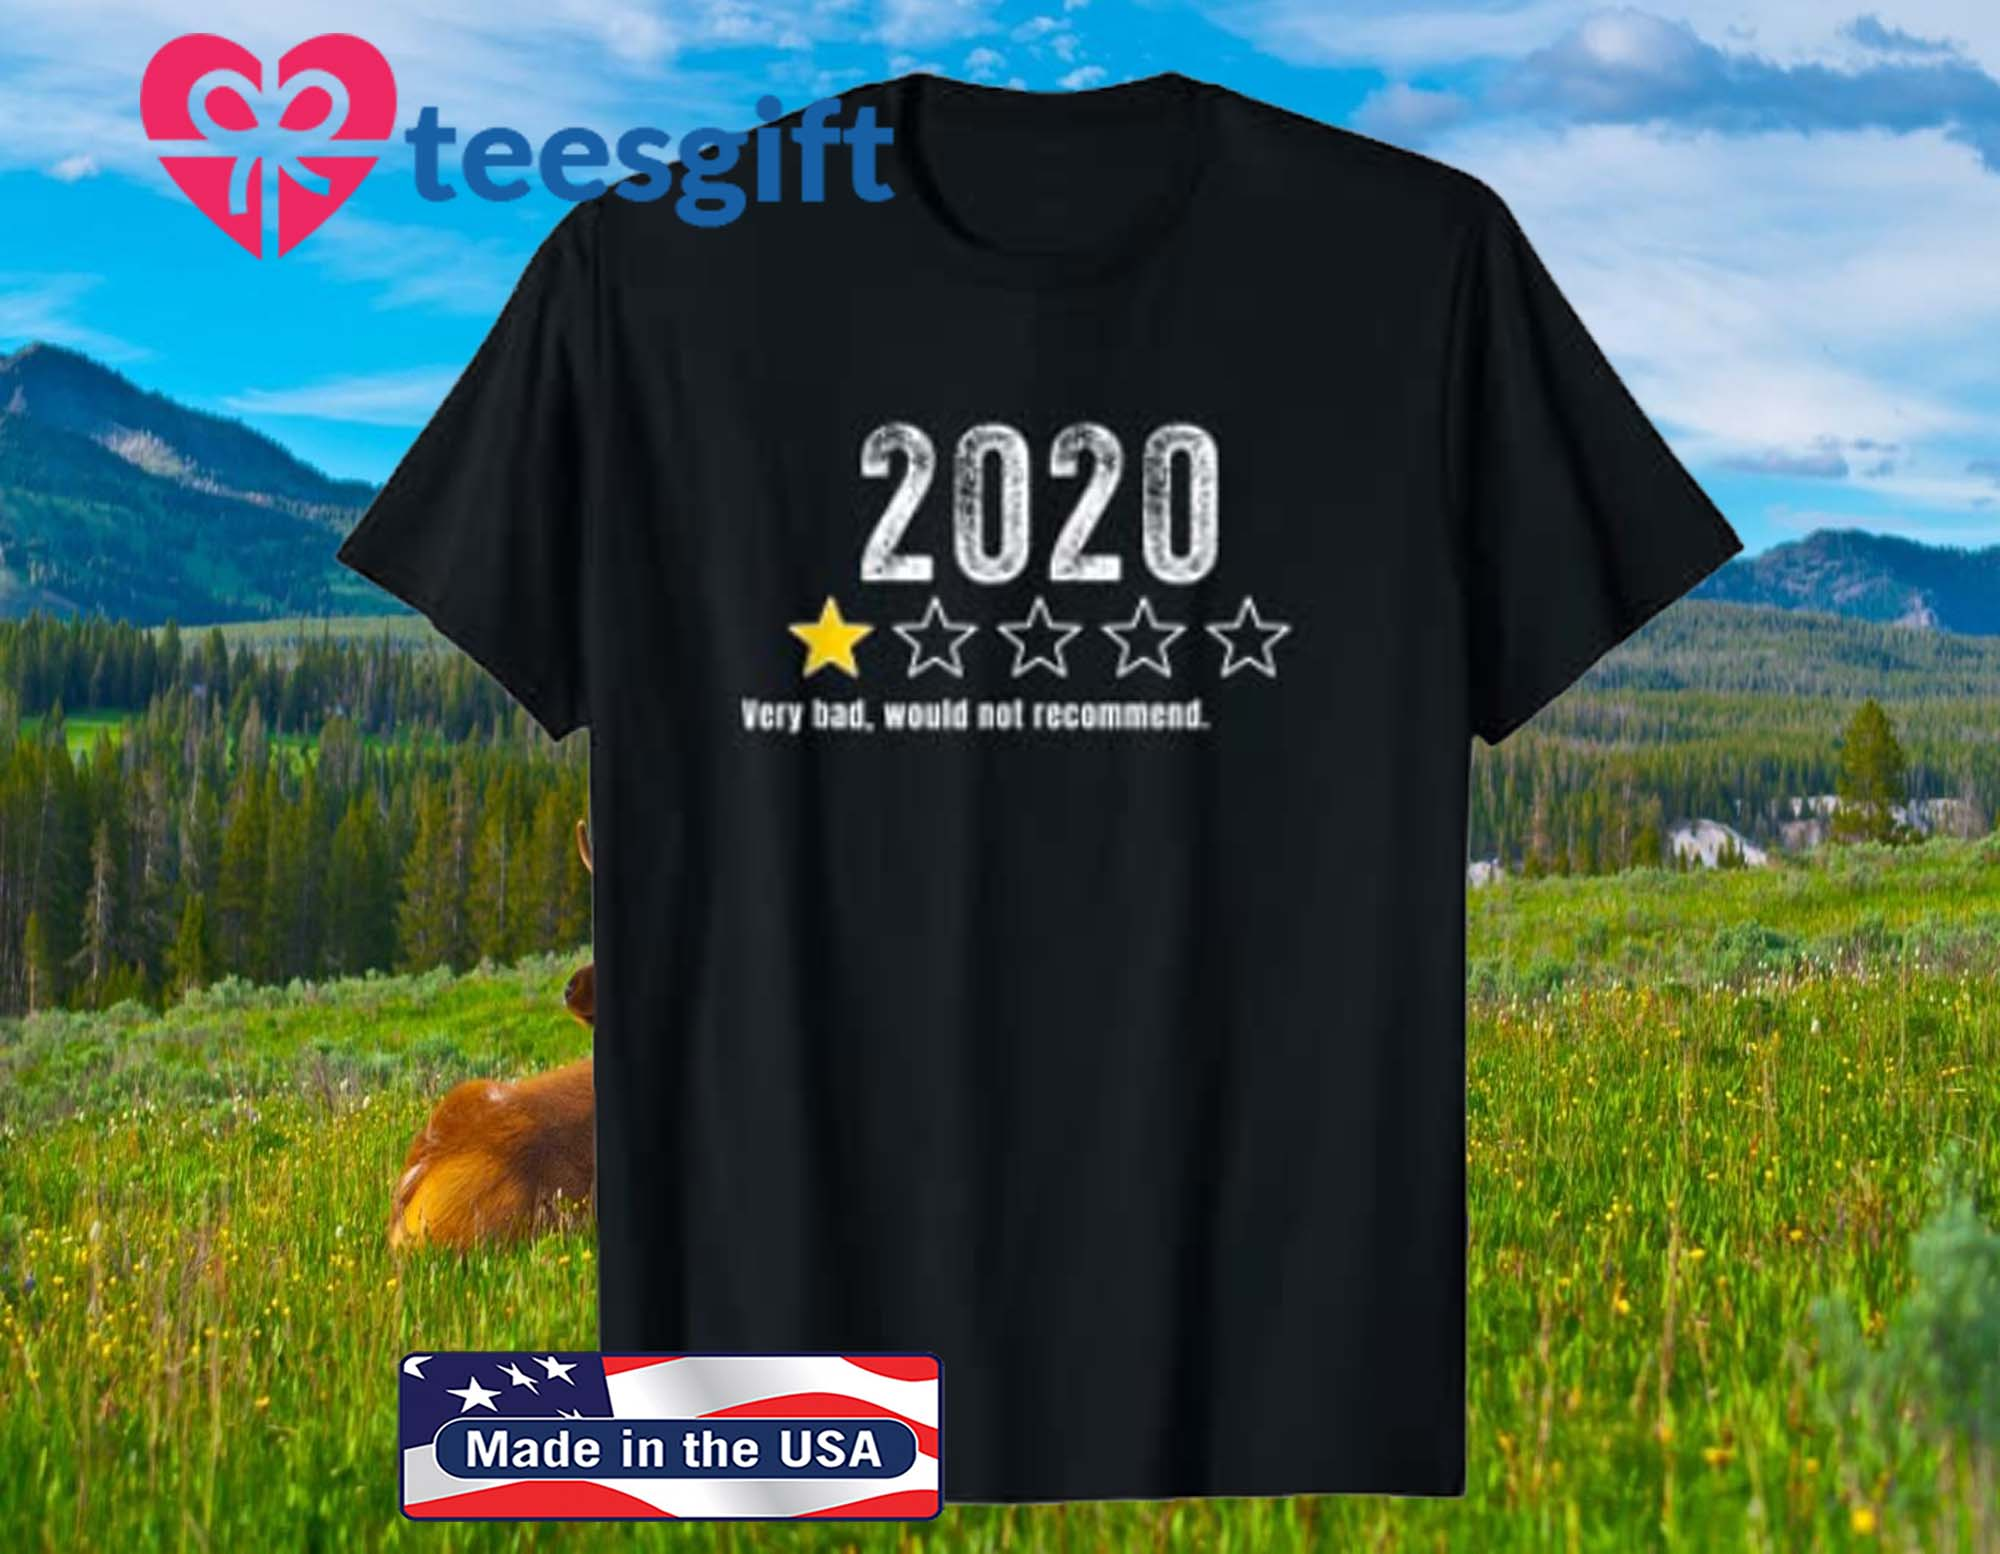 2020 Very Bad, Would Not Recommend Funny Gifts For Men Women T-Shirt